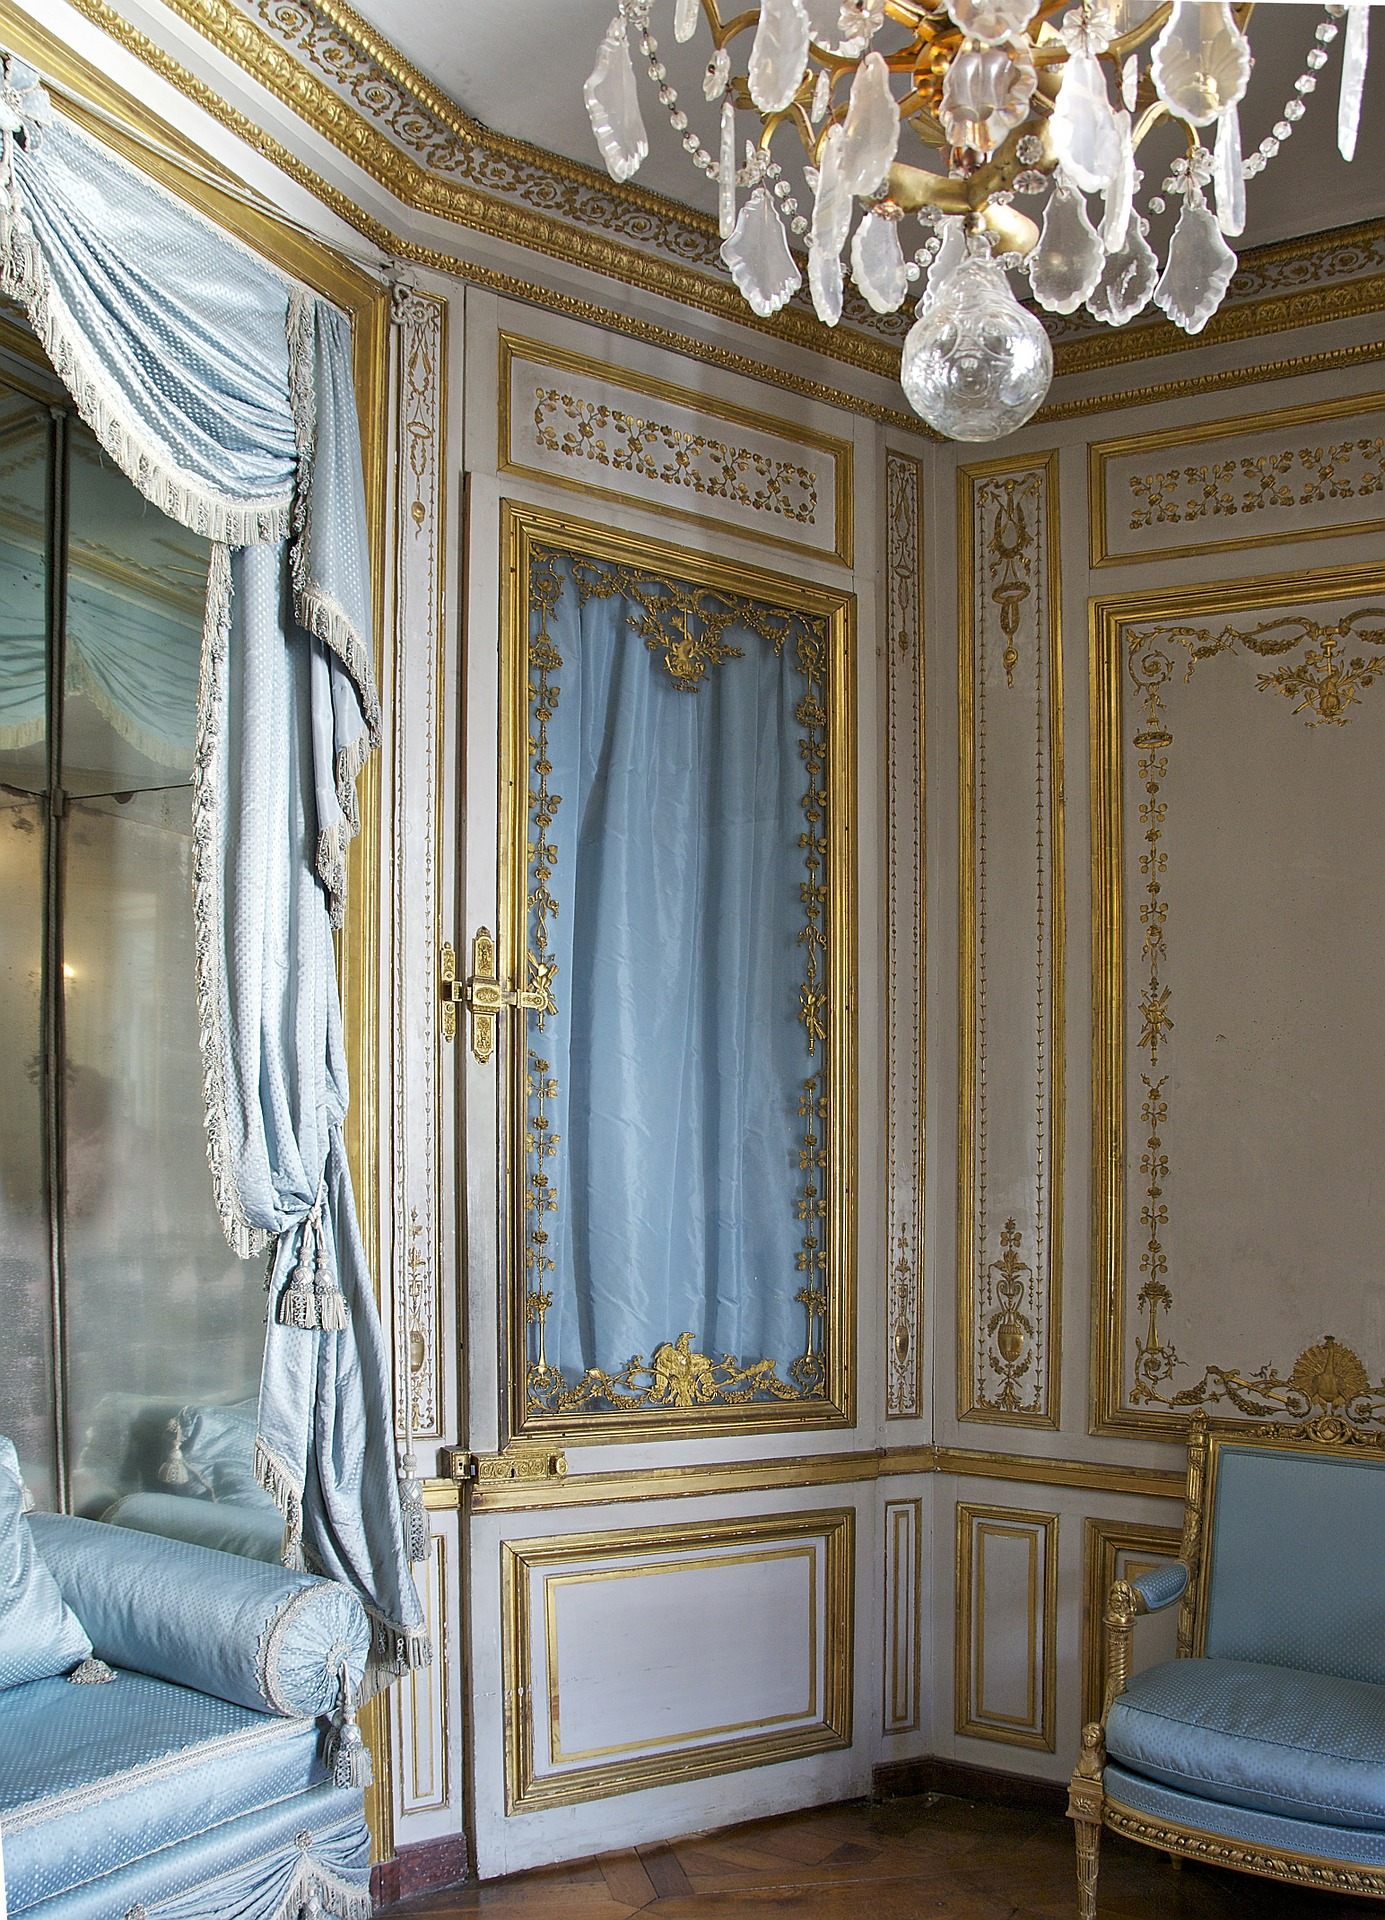 Marie Antoinette's private sitting room